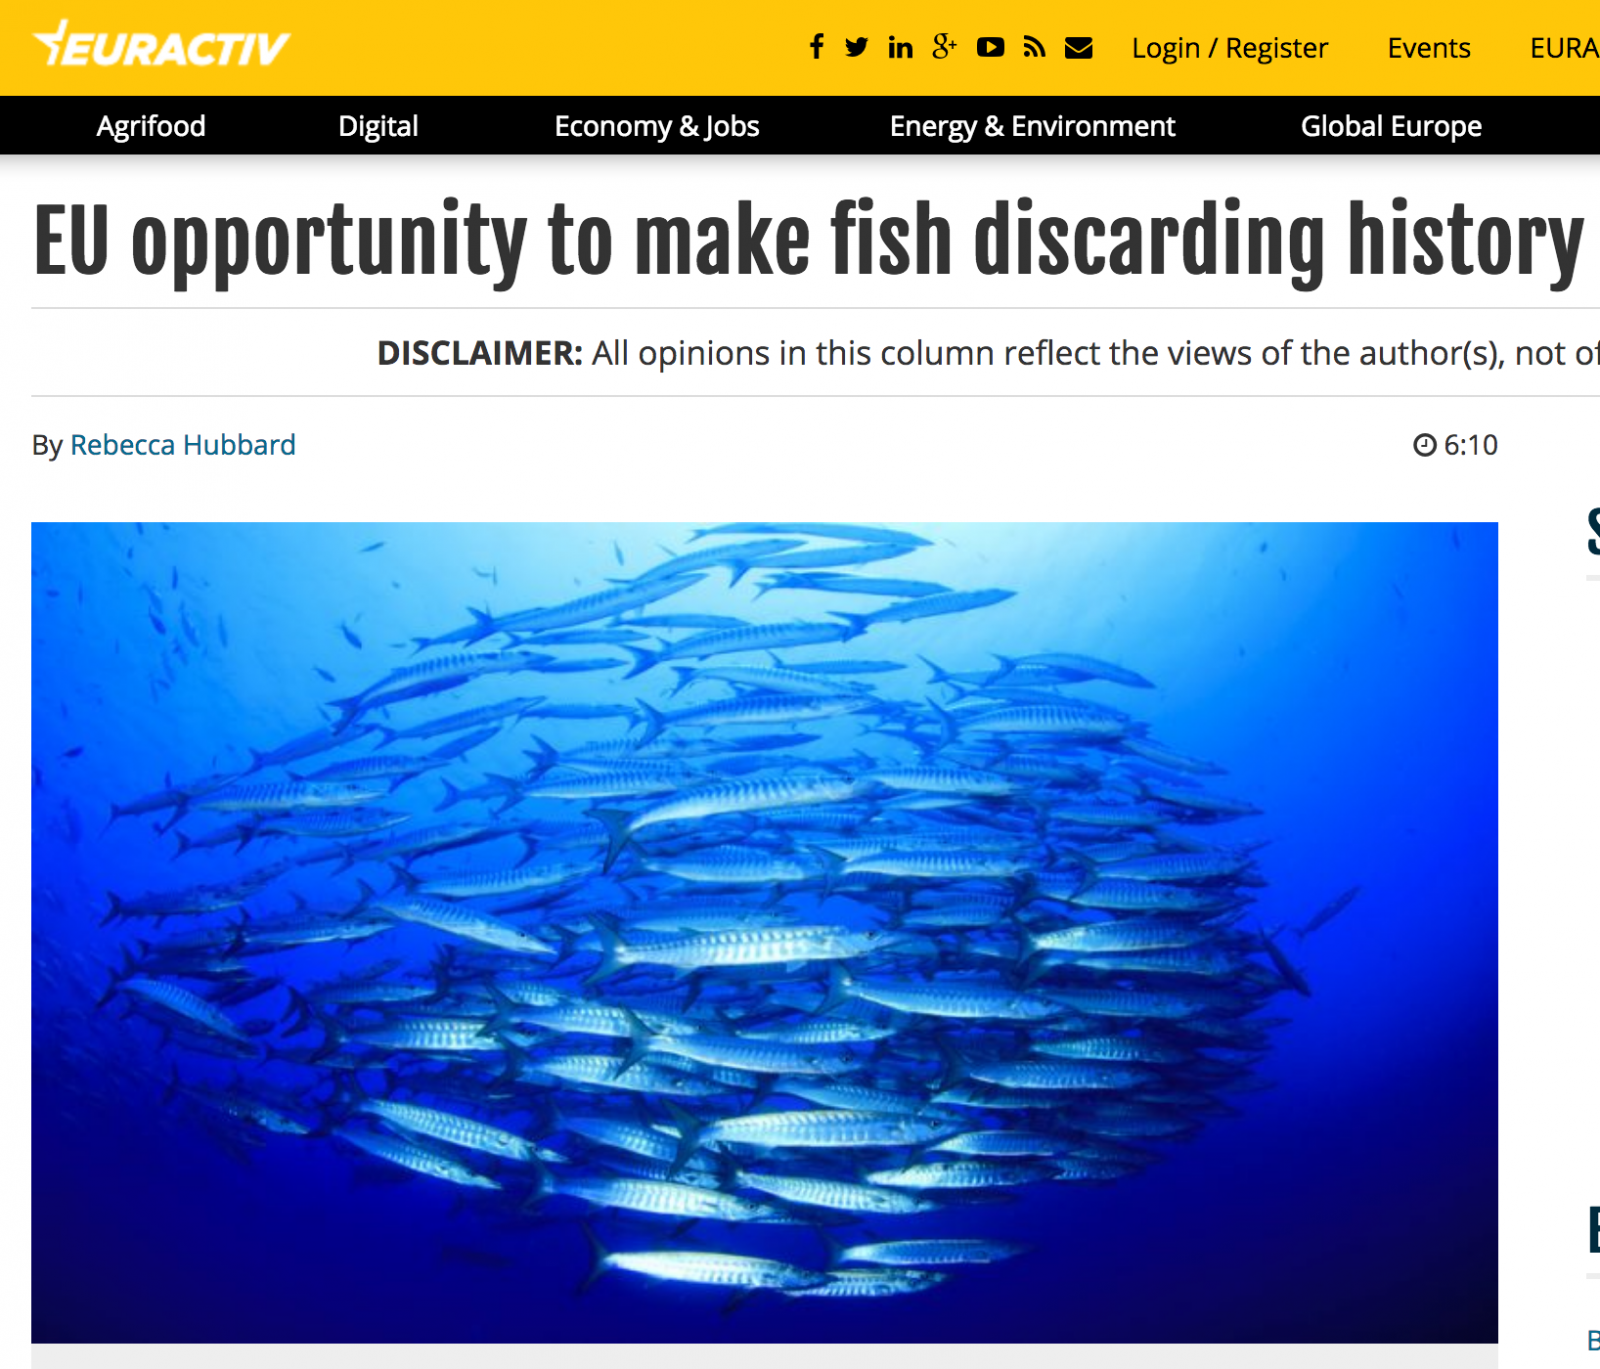 Euractiv: EU opportunity to make fish discarding history